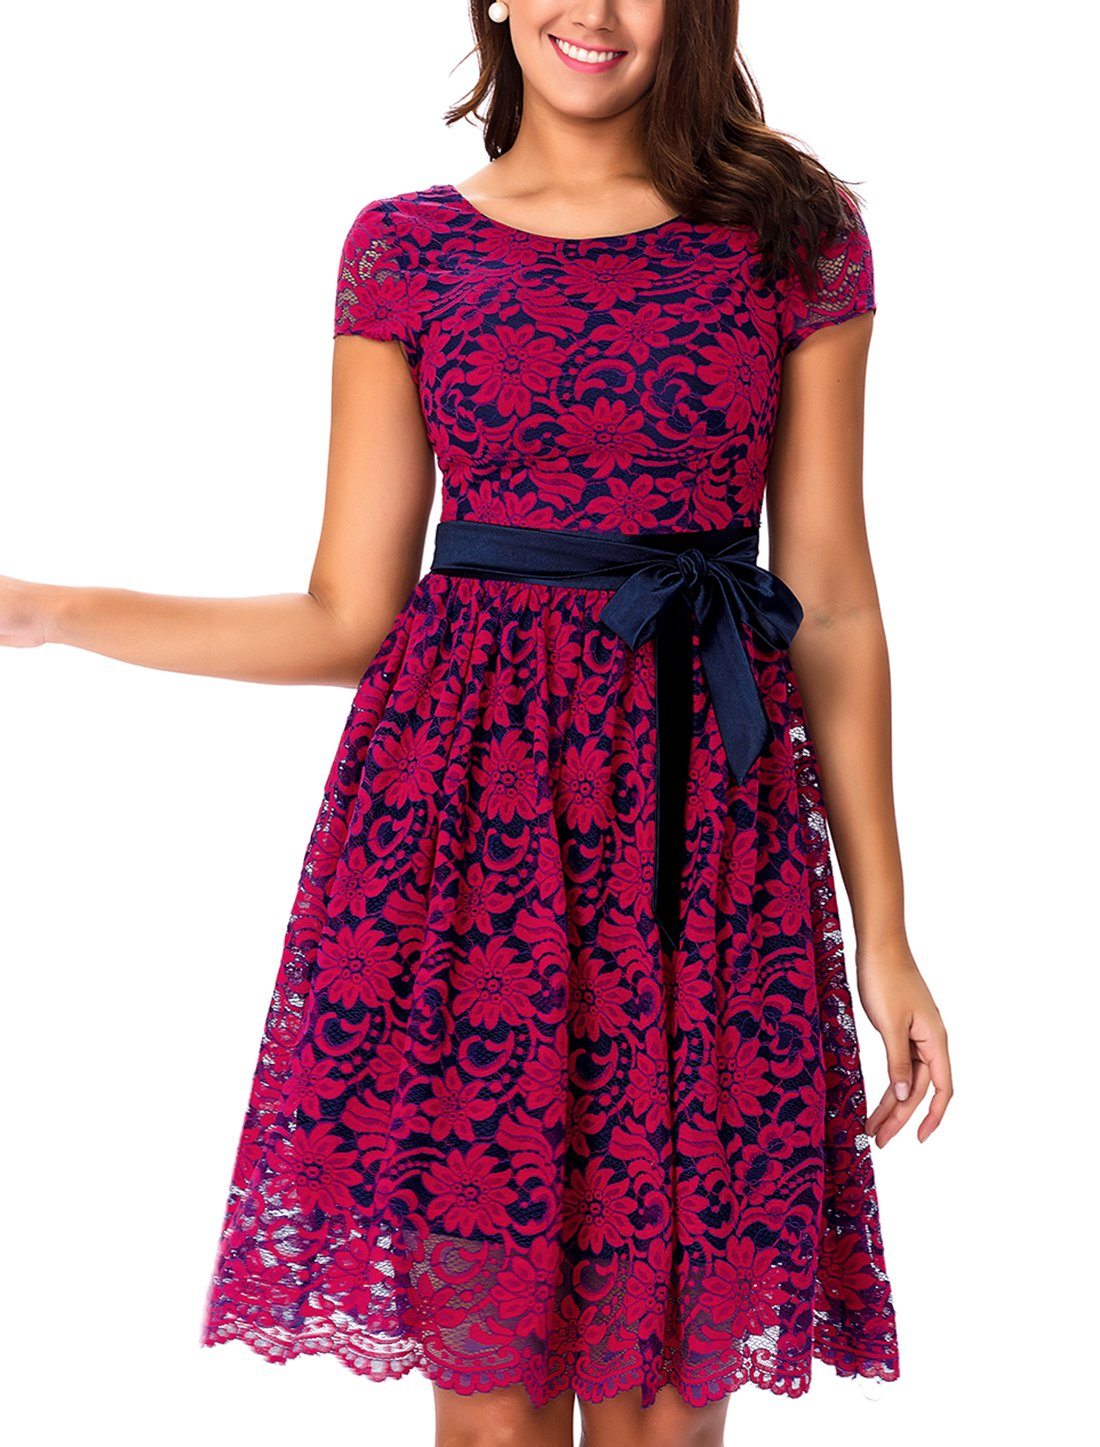 Noctflos Women's Floral Lace Contrast Bow Cocktail Wedding Party Swing Dress, Rose and Navy, 6/8